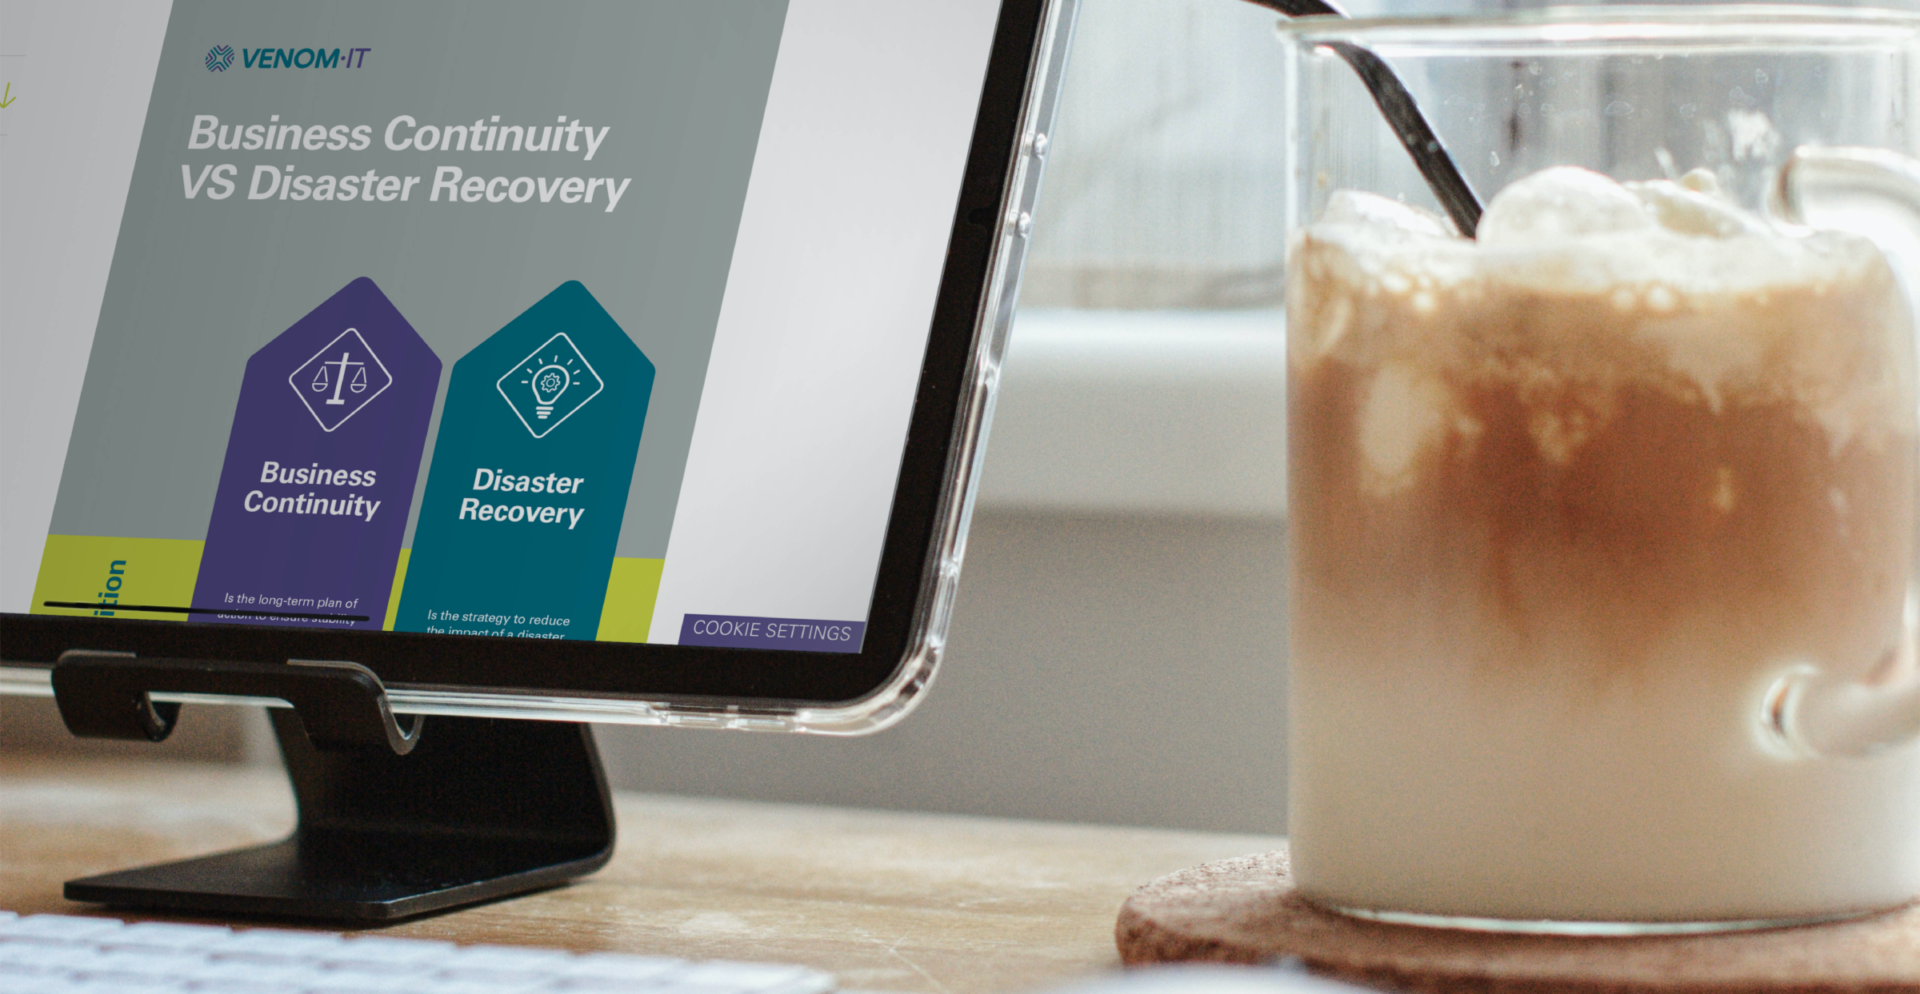 Business Continuity-Disaster Recovery Comparison - Infographic